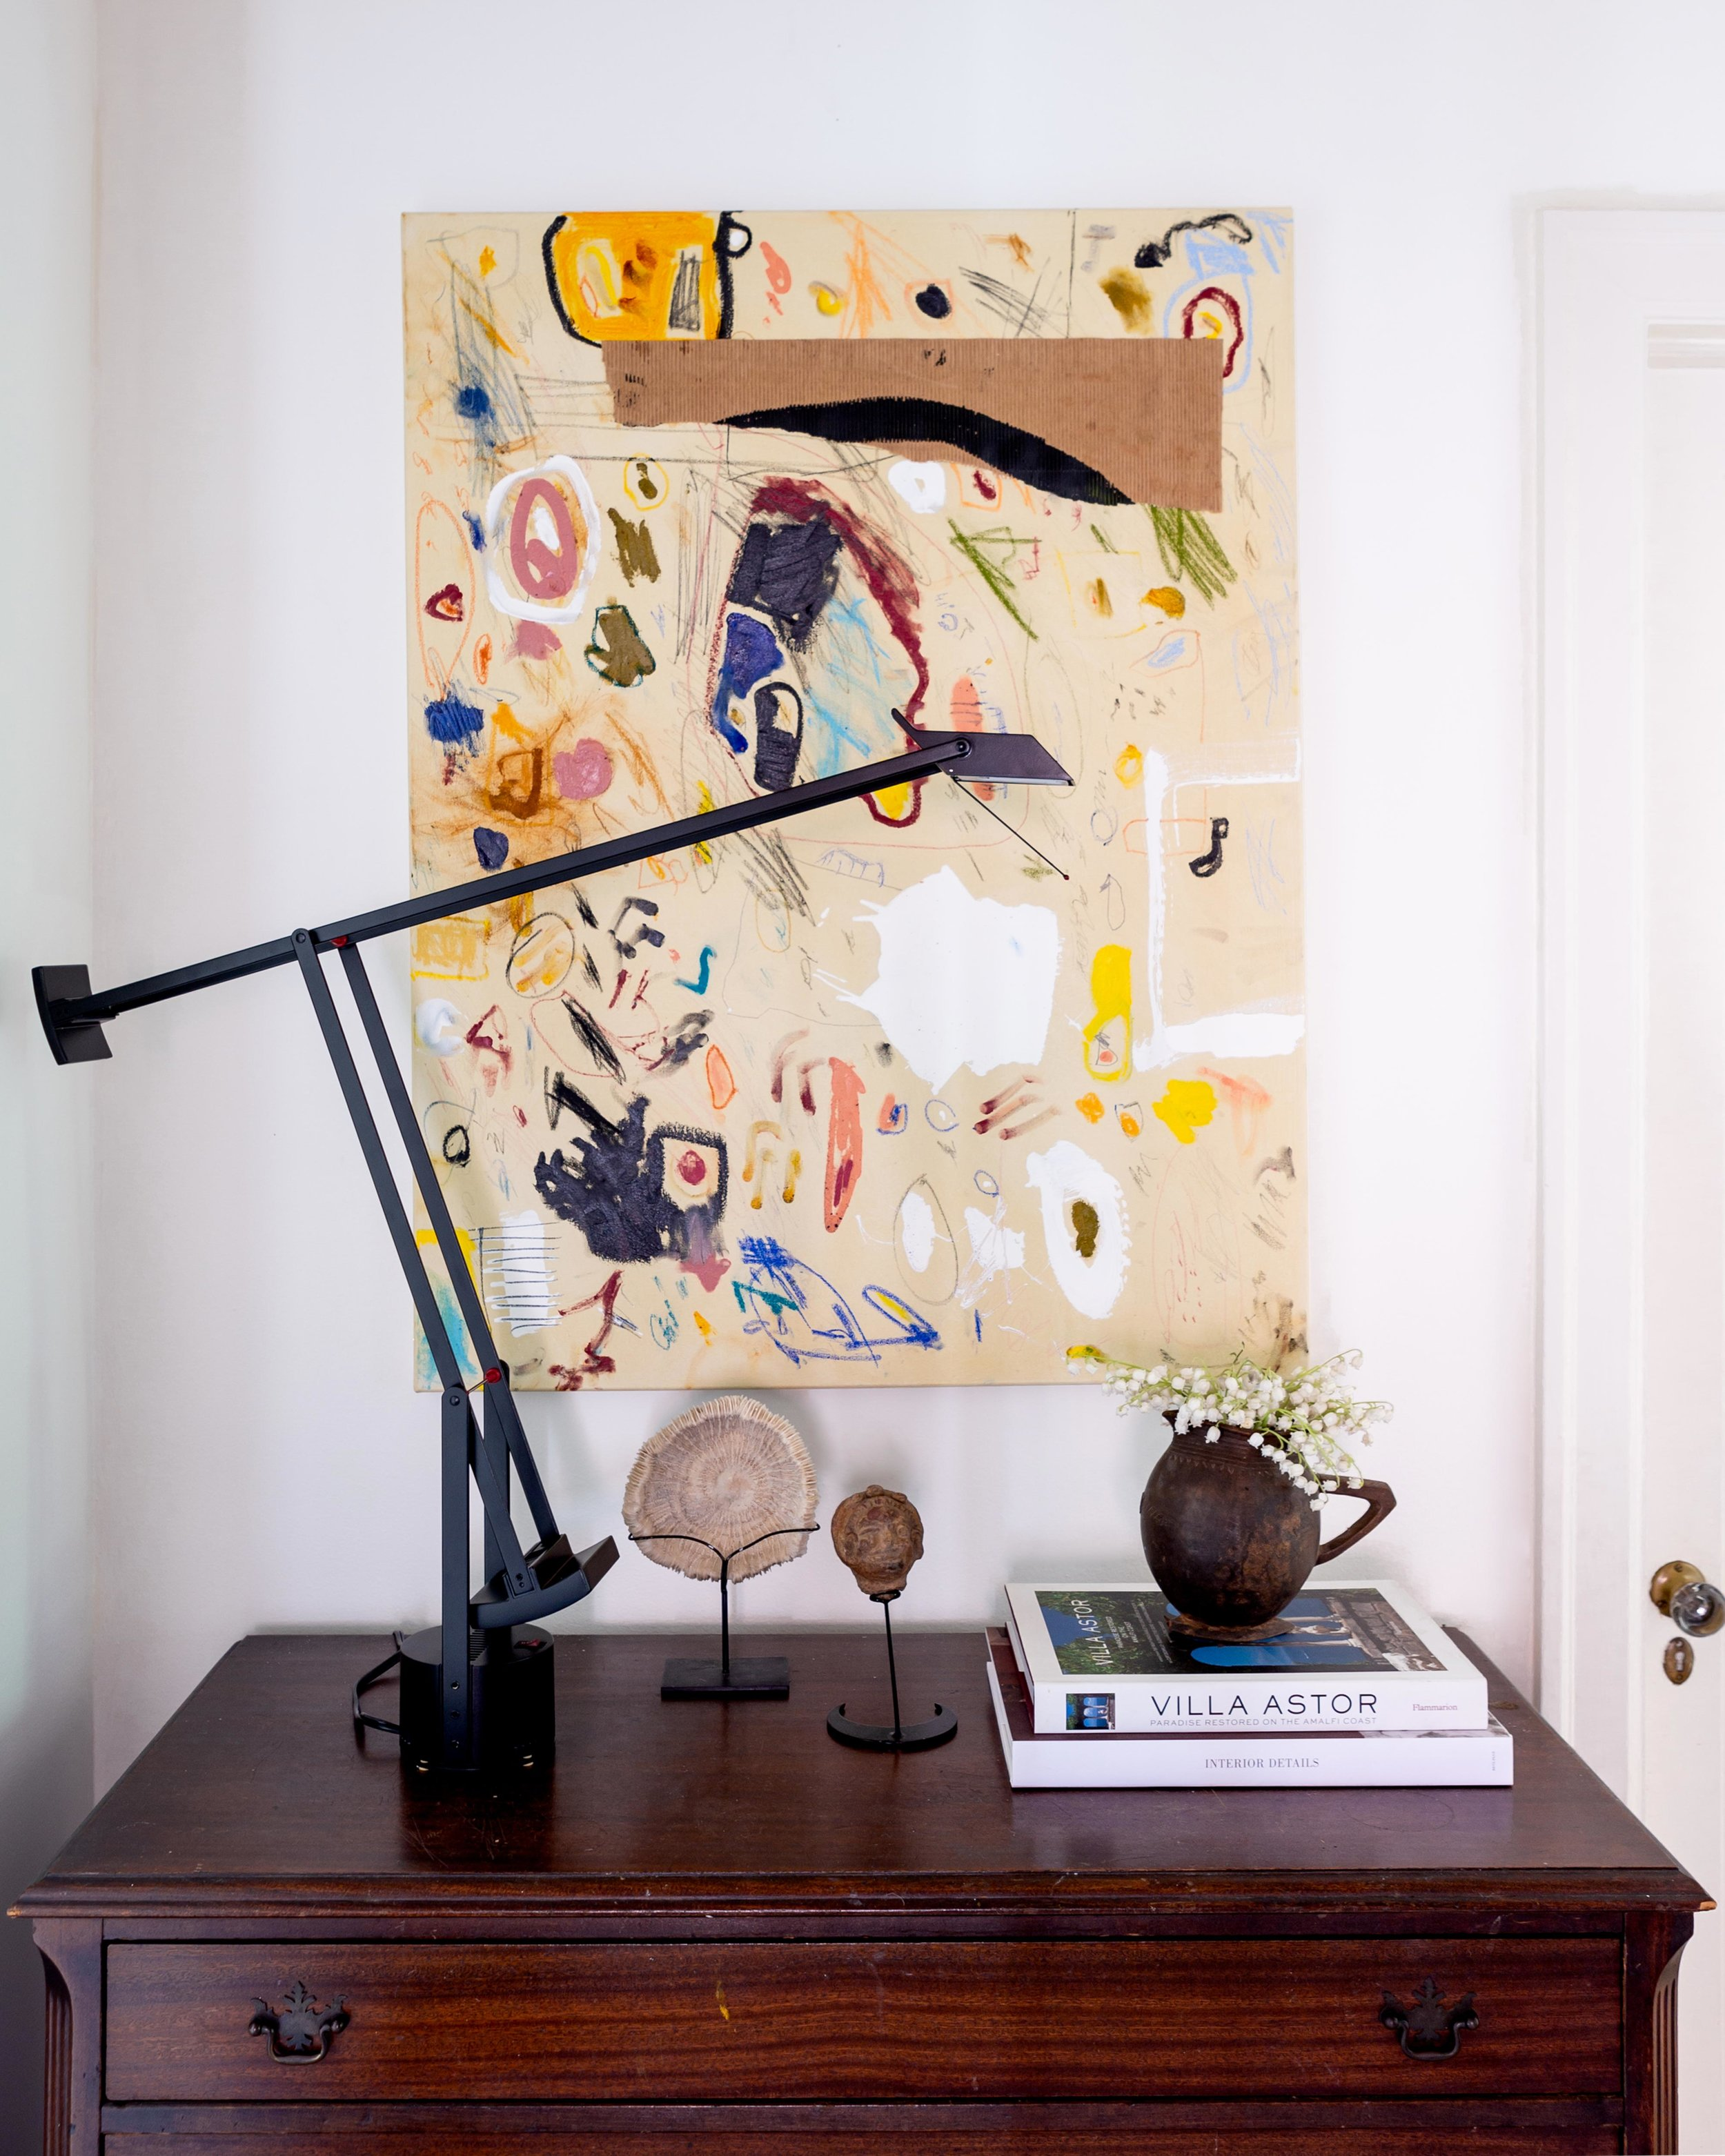 One of McLure's abstract canvases is hung above an antique chest that he's had since he was 13. The sculptures were Christmas gifts from Mama McLure.